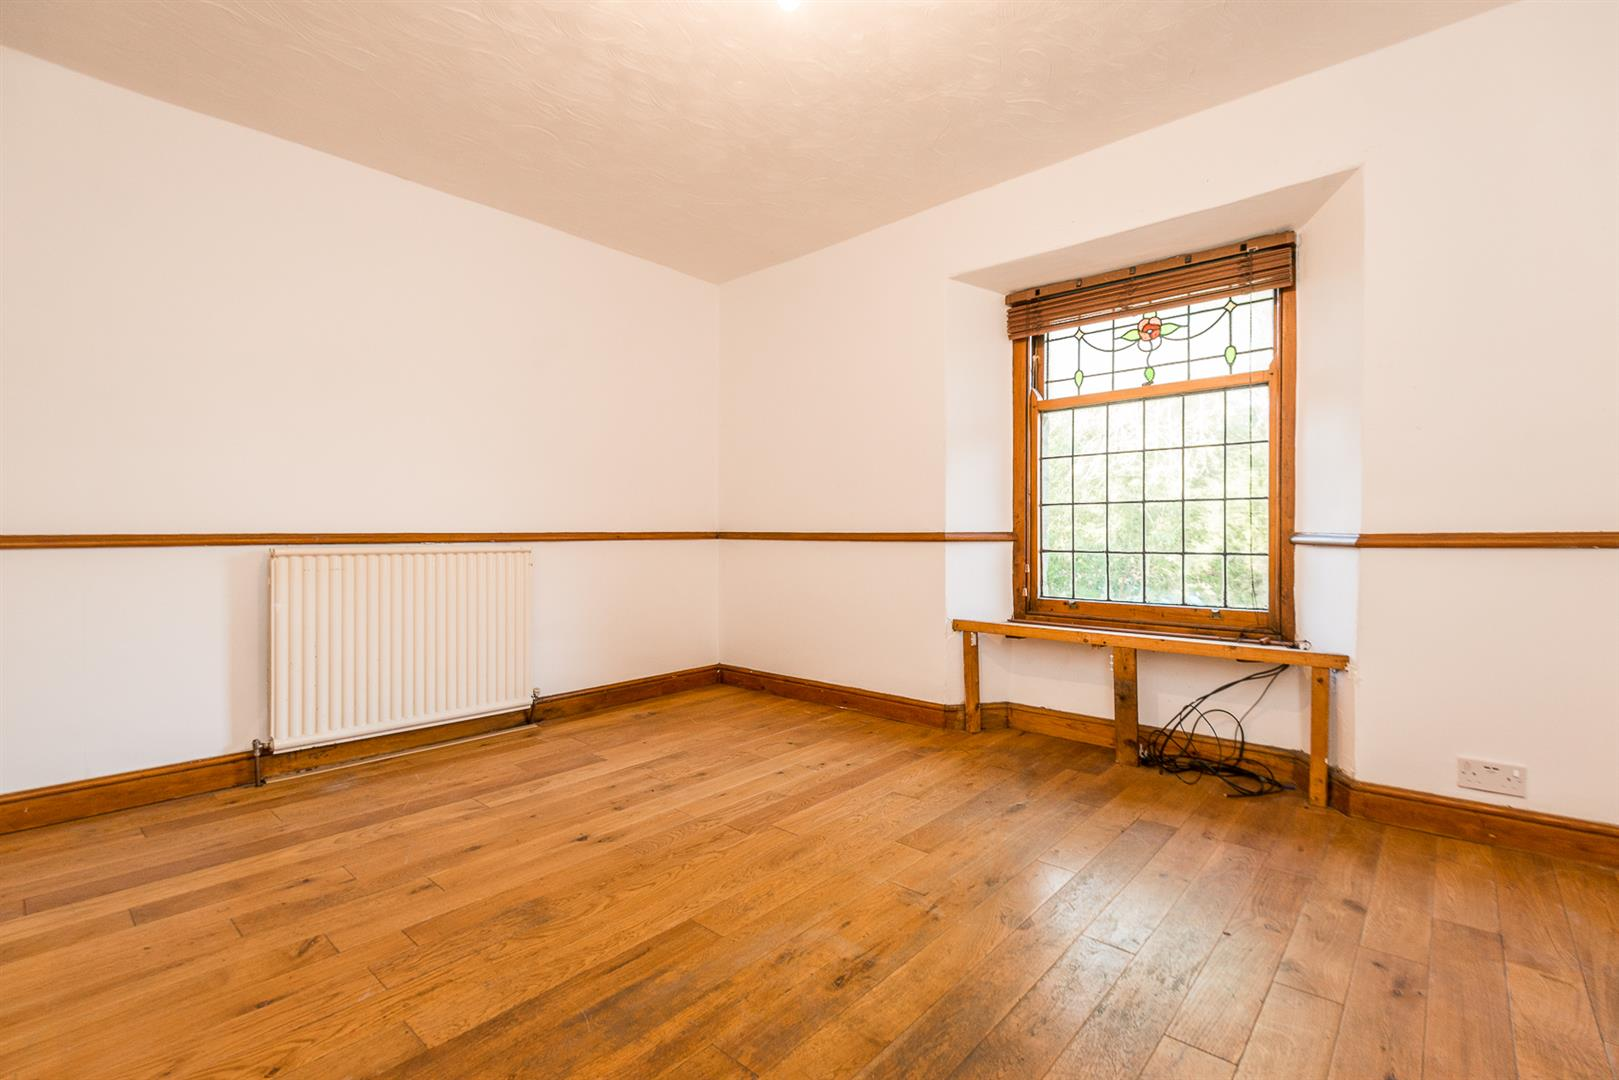 2 Bedroom House Sale Agreed Image 7